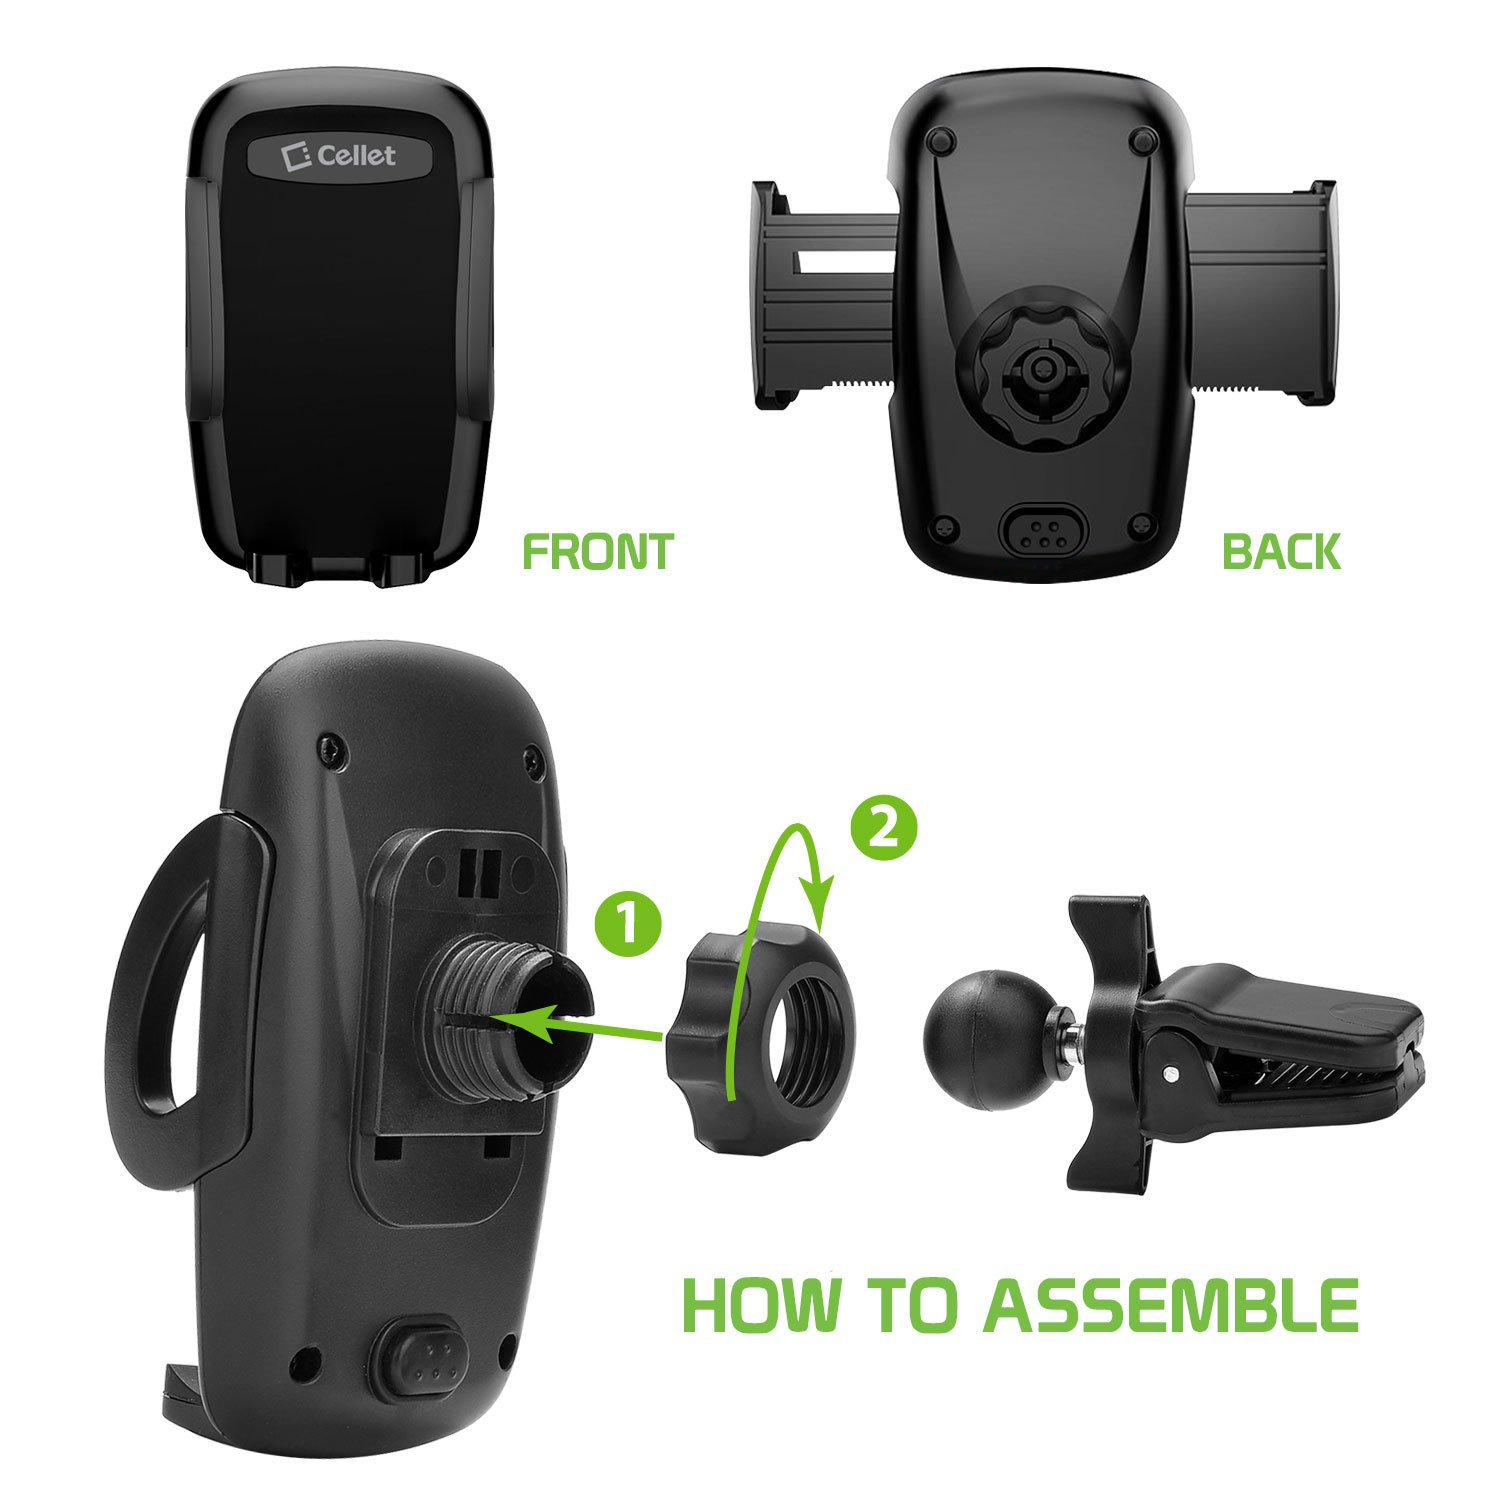 Galaxy S9//S8//S7//S6 LG Huawei Motorola and More PHVENTE4FA Cellet Car Phone Mount,Air Vent Phone Holder Car Adjustable Car Phone Holder compatible for iPhone Xs//Xs max//Xr//X//8//8Plus//7//7Plus Note 9//8//5